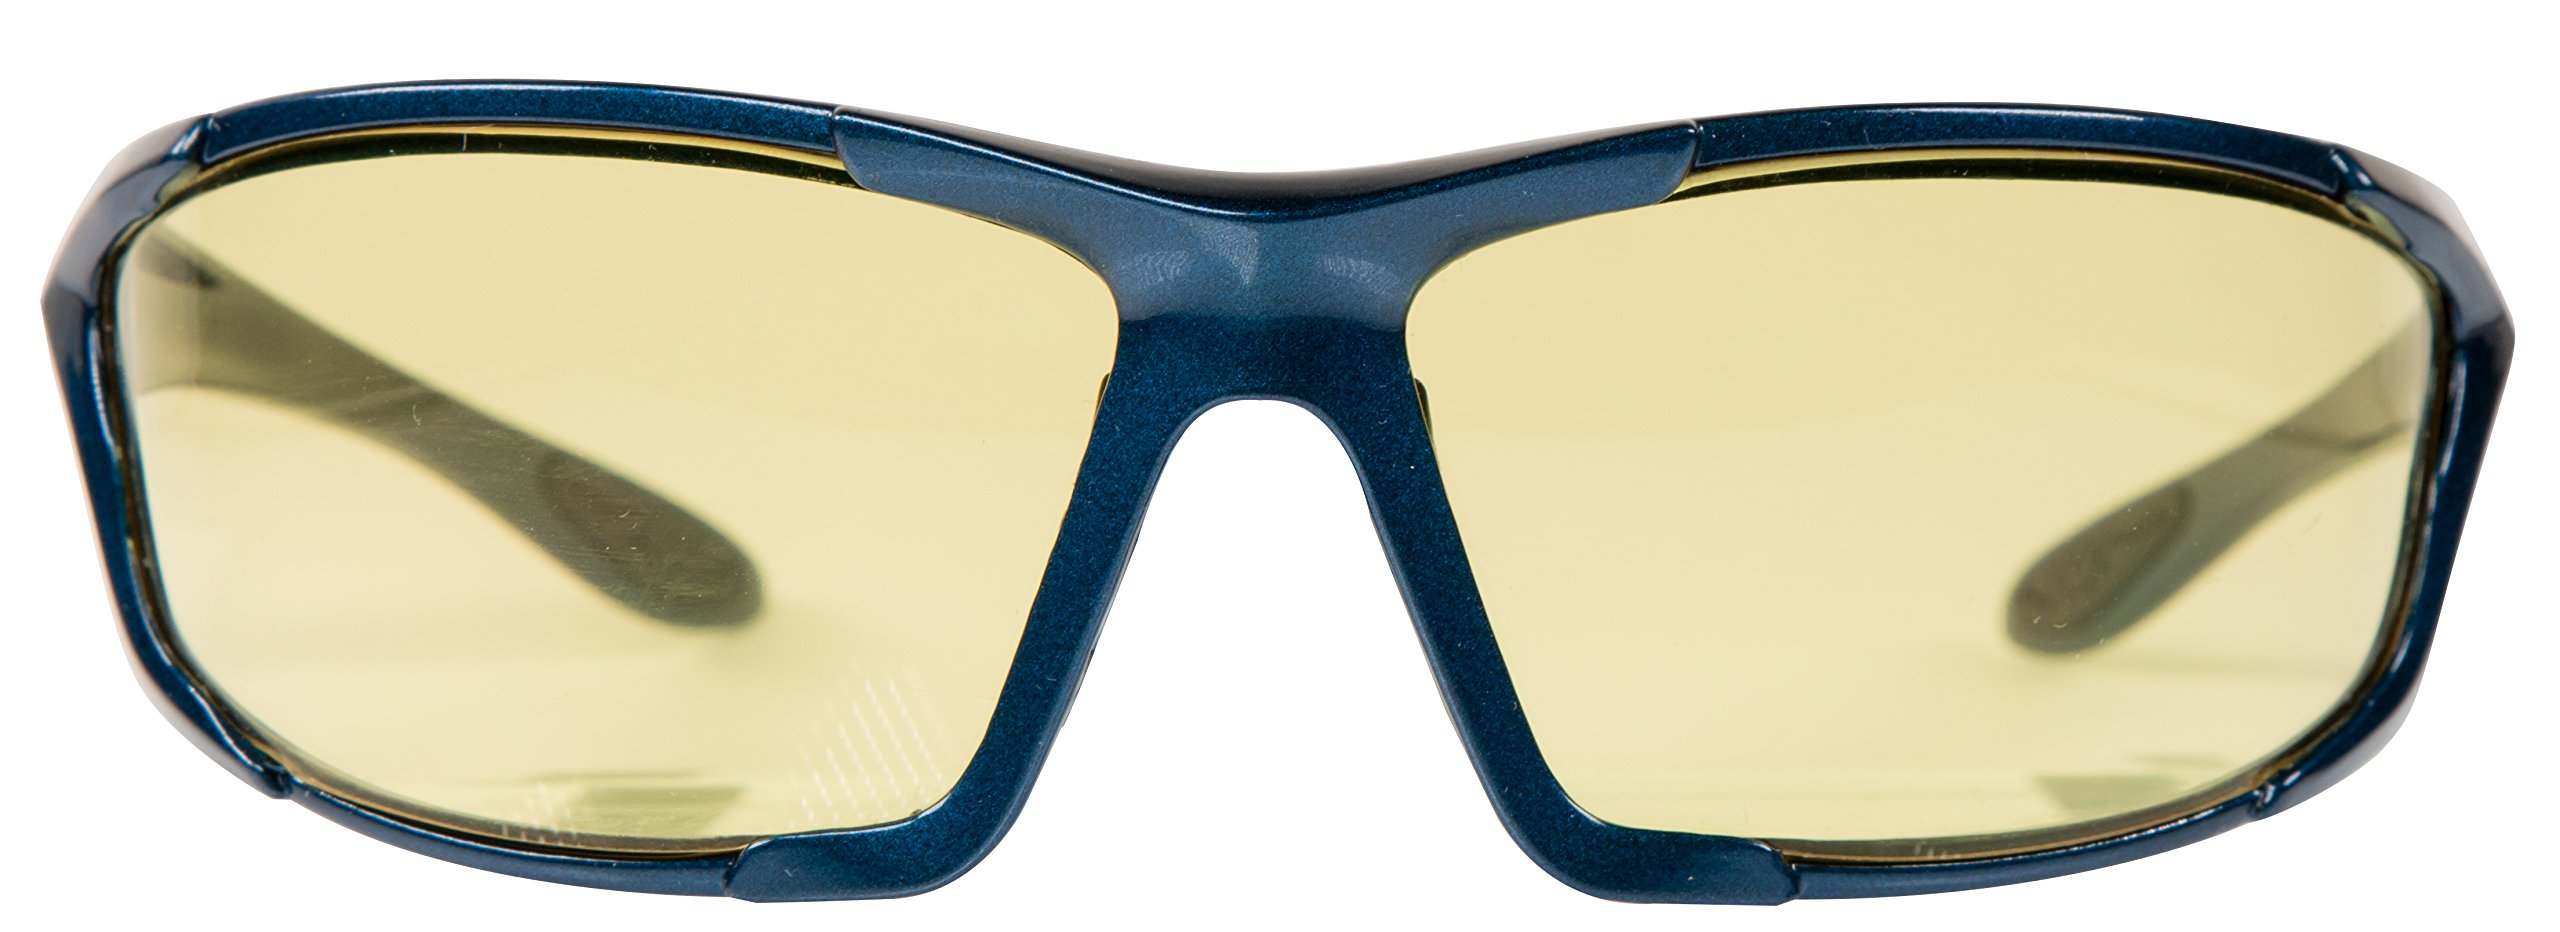 Smith & Wesson Major Full Frame Shooting Glasses with No-Slip Rubber, Impact Resistance and Storage Bag for Shooting, Working and Everyday Use by SMITH & WESSON